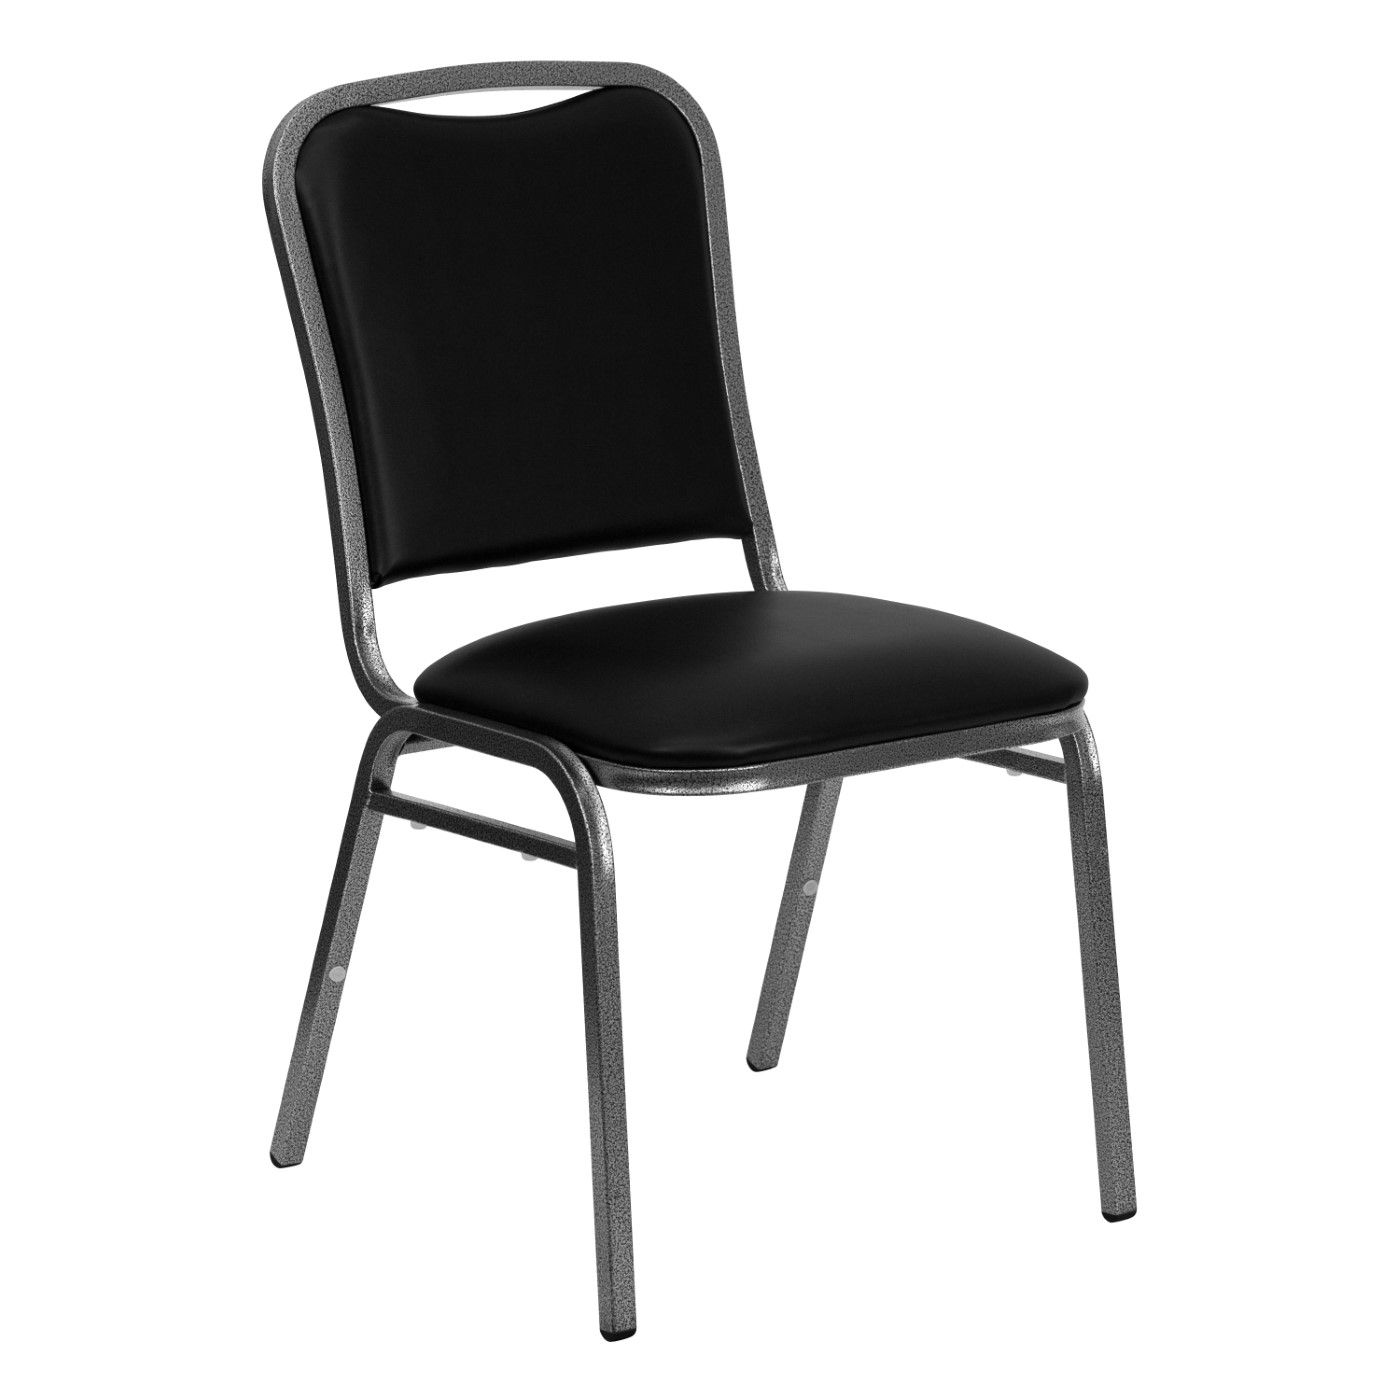 TOUGH ENOUGH Series Stacking Banquet Chair in Black Vinyl - Silver Vein Frame